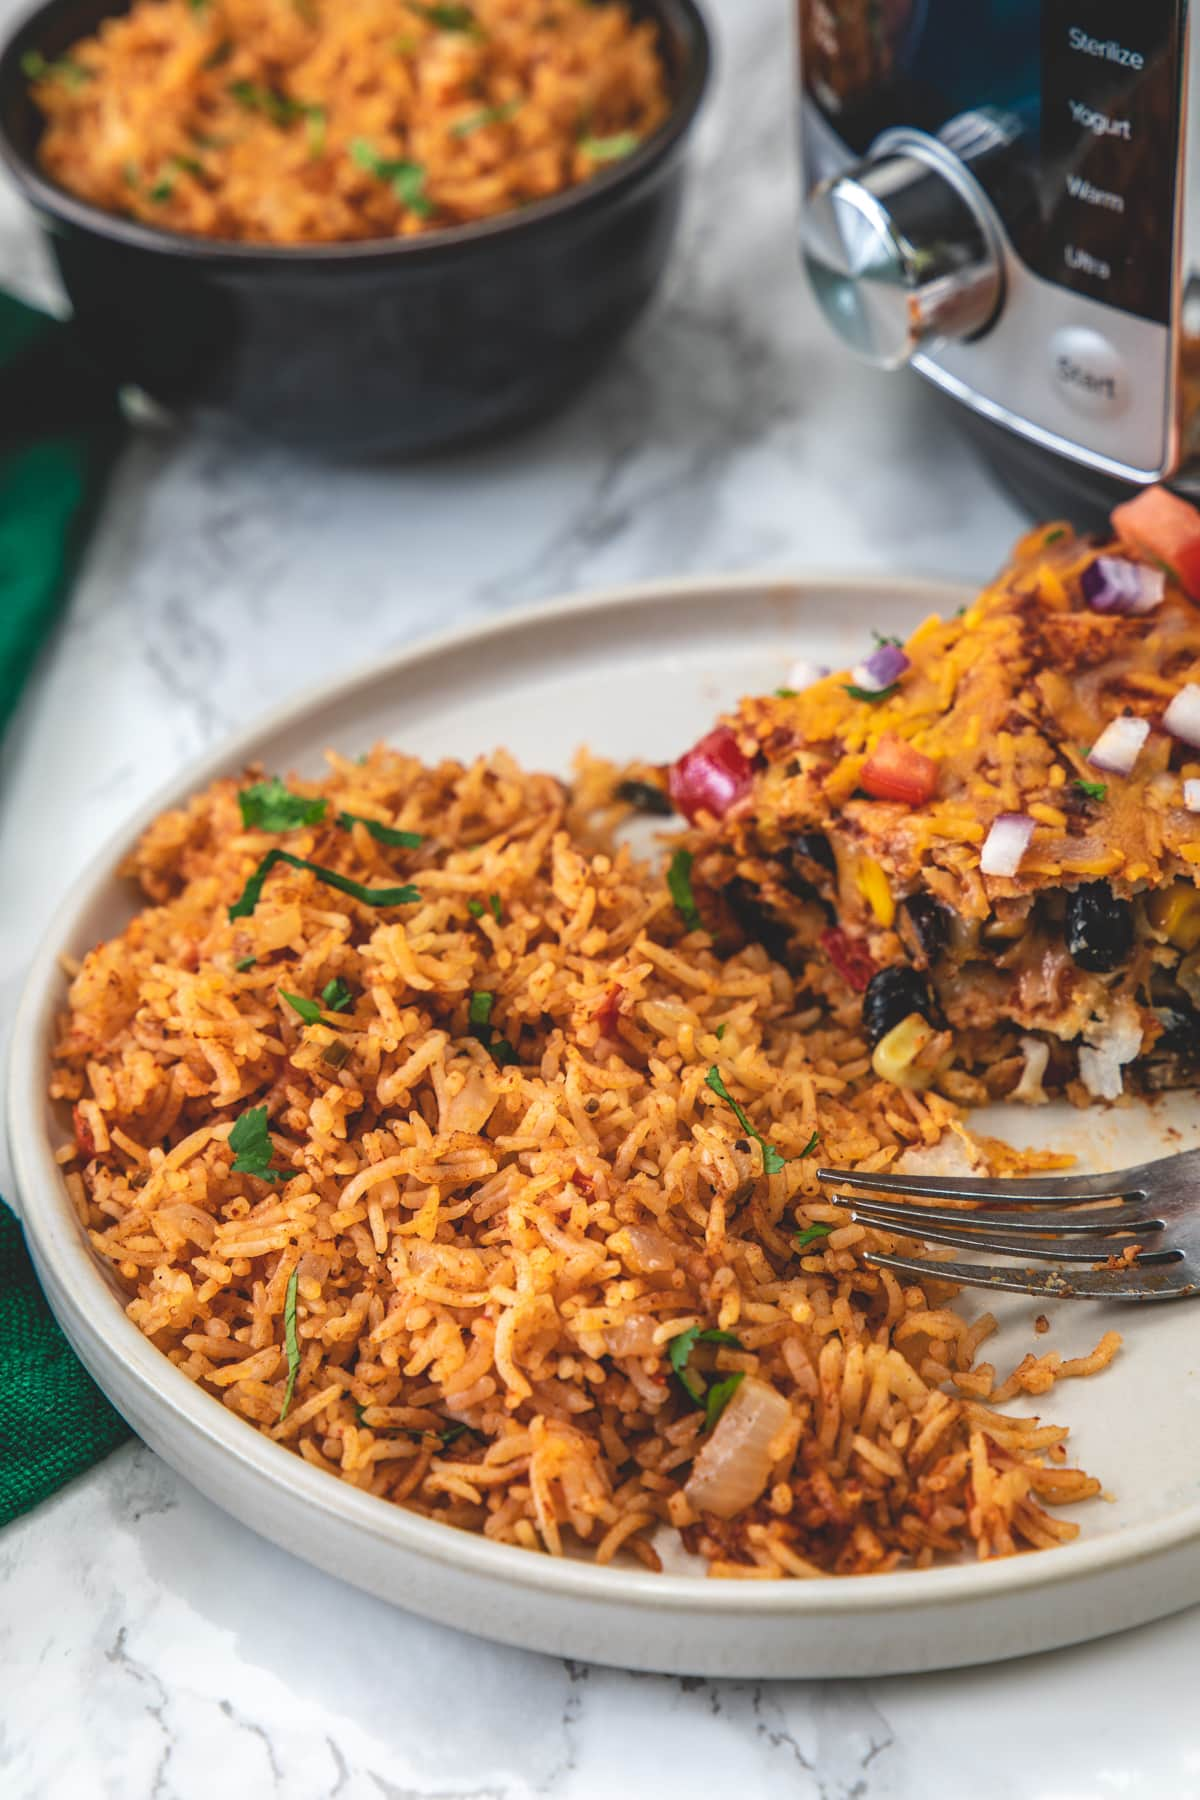 Instant pot mexican rice served in a plate with enchilada casserole.